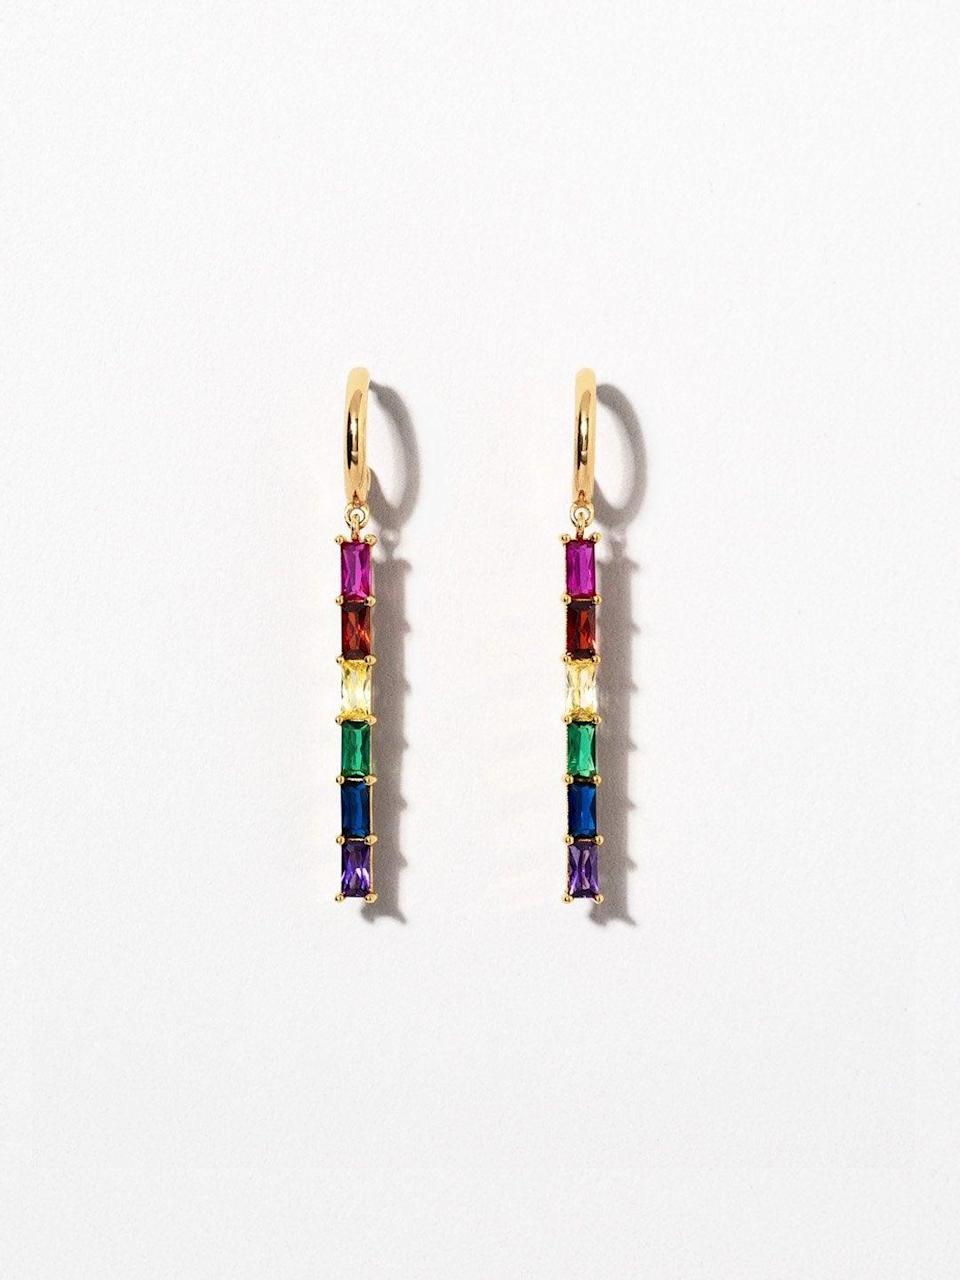 """<h3>Ana Luisa Gold Vermeil Prism Earrings<br></h3> <br>When shopping for demi-fine jewelry, look out for gold vermeil — it offers an actual measurable thickness of gold layered over sterling silver. Ana Luisa uses the material to prismatic effect with its rainbow-hued drop earrings. <br><br><em>Shop <strong><a href=""""http://analuisa.com"""" rel=""""nofollow noopener"""" target=""""_blank"""" data-ylk=""""slk:Ana Luisa"""" class=""""link rapid-noclick-resp"""">Ana Luisa</a></strong></em><br><br><strong>Ana Luisa</strong> Gold Vermeil Prism Earrings, $, available at <a href=""""https://go.skimresources.com/?id=30283X879131&url=https%3A%2F%2Fwww.analuisa.com%2Fcollections%2Fearrings%2Fproducts%2Fpride-earrings-prism"""" rel=""""nofollow noopener"""" target=""""_blank"""" data-ylk=""""slk:Ana Luisa"""" class=""""link rapid-noclick-resp"""">Ana Luisa</a><br><br><br>"""